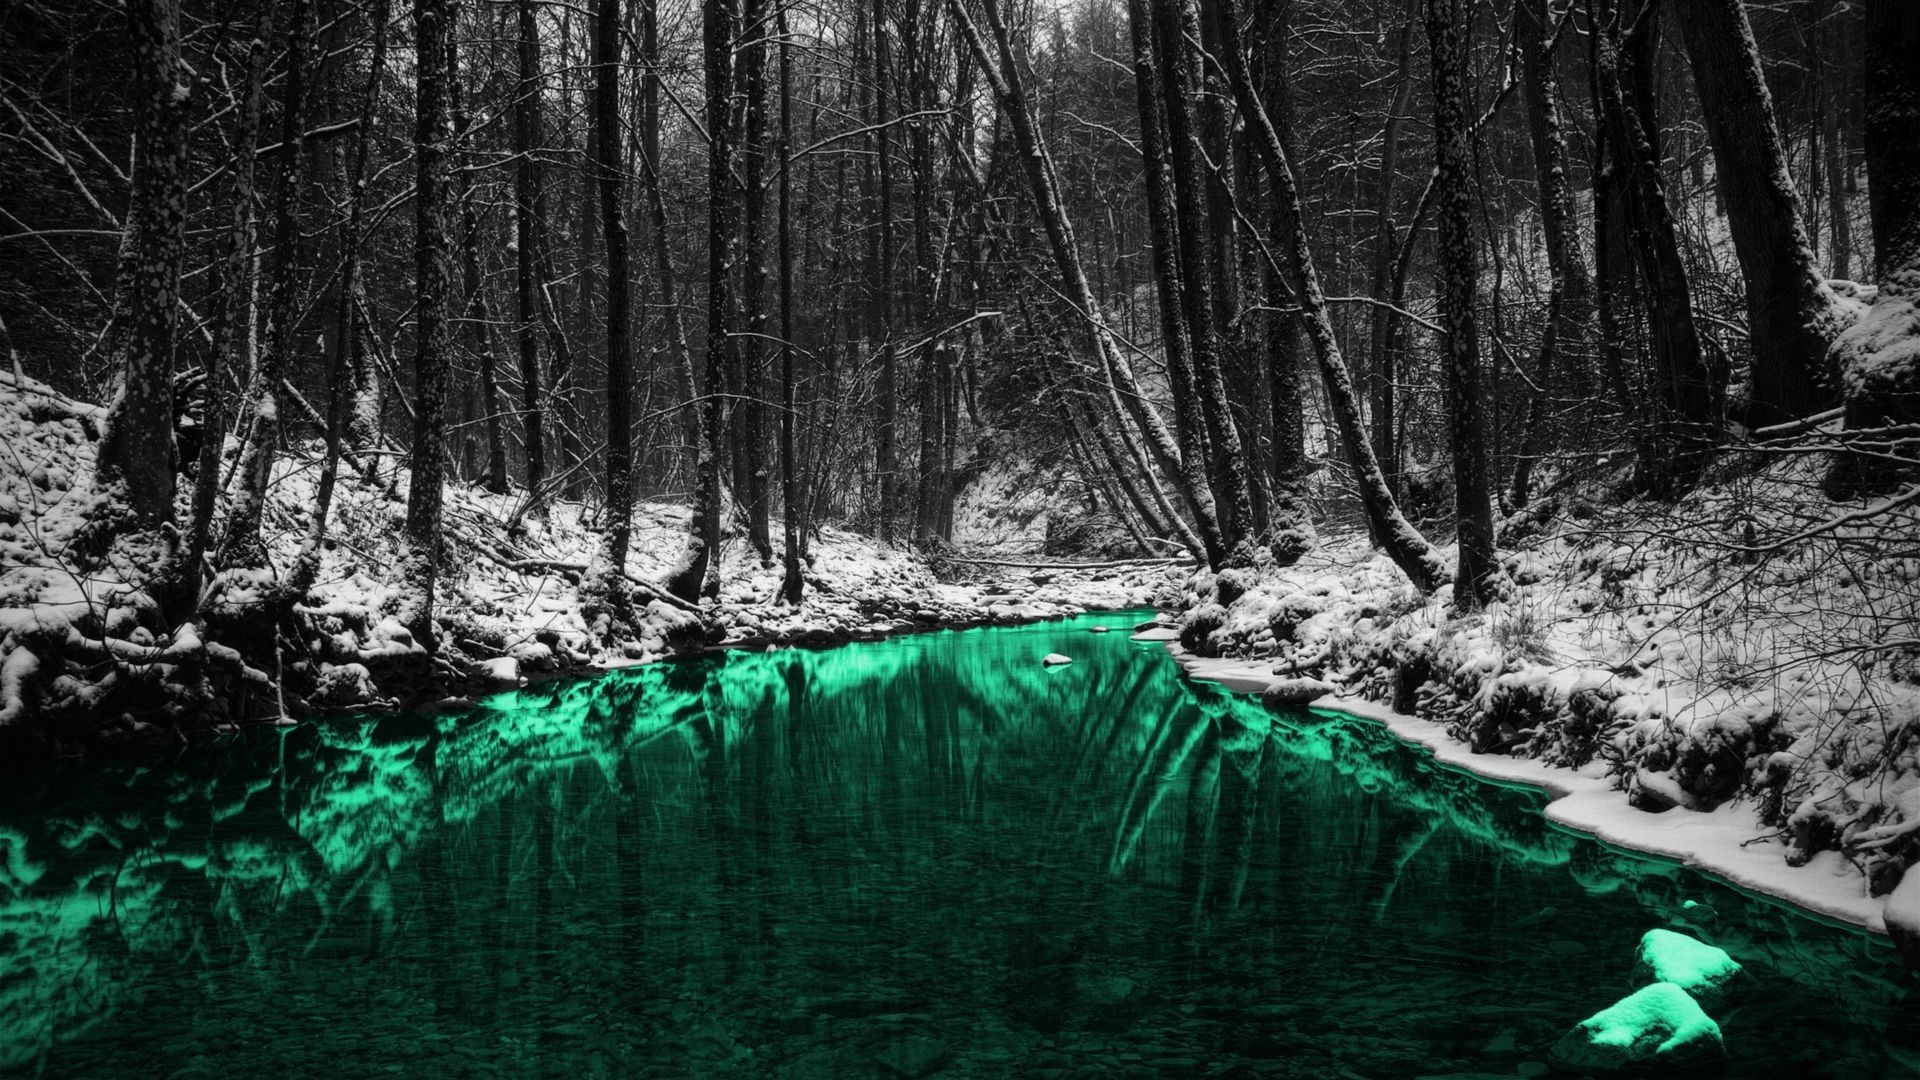 Green Nature Forests Outdoors Selective Coloring Rivers Wallpaper 1920x1080 px